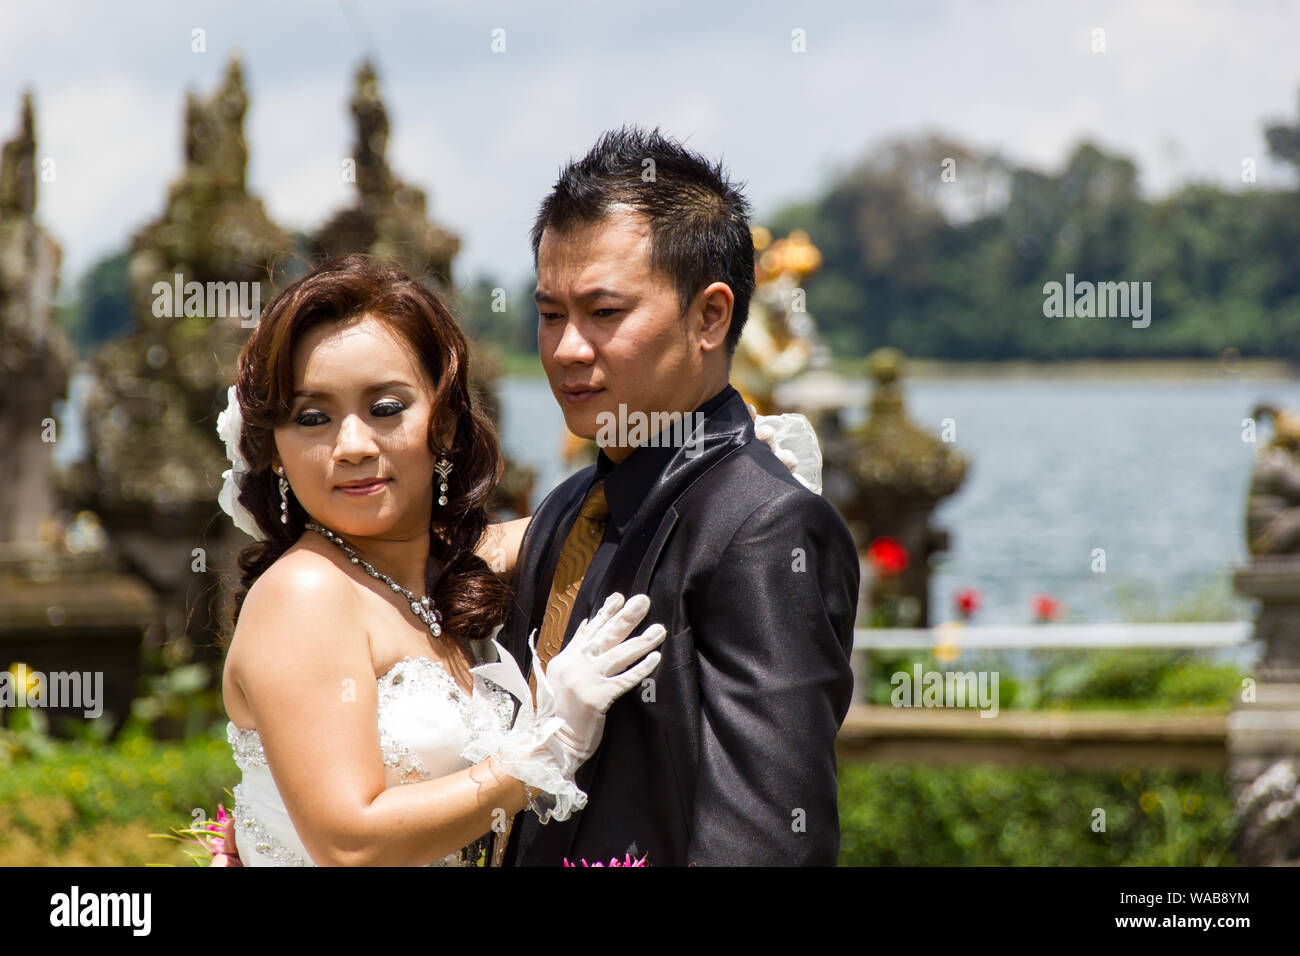 Bali, Indonesia - Mar 25th, 2014  - Newlywed Chinese couple  posing for photos at  Pura Ulun Danu Bratan, Bali. Hindu temple surrounded by flowers on Stock Photo